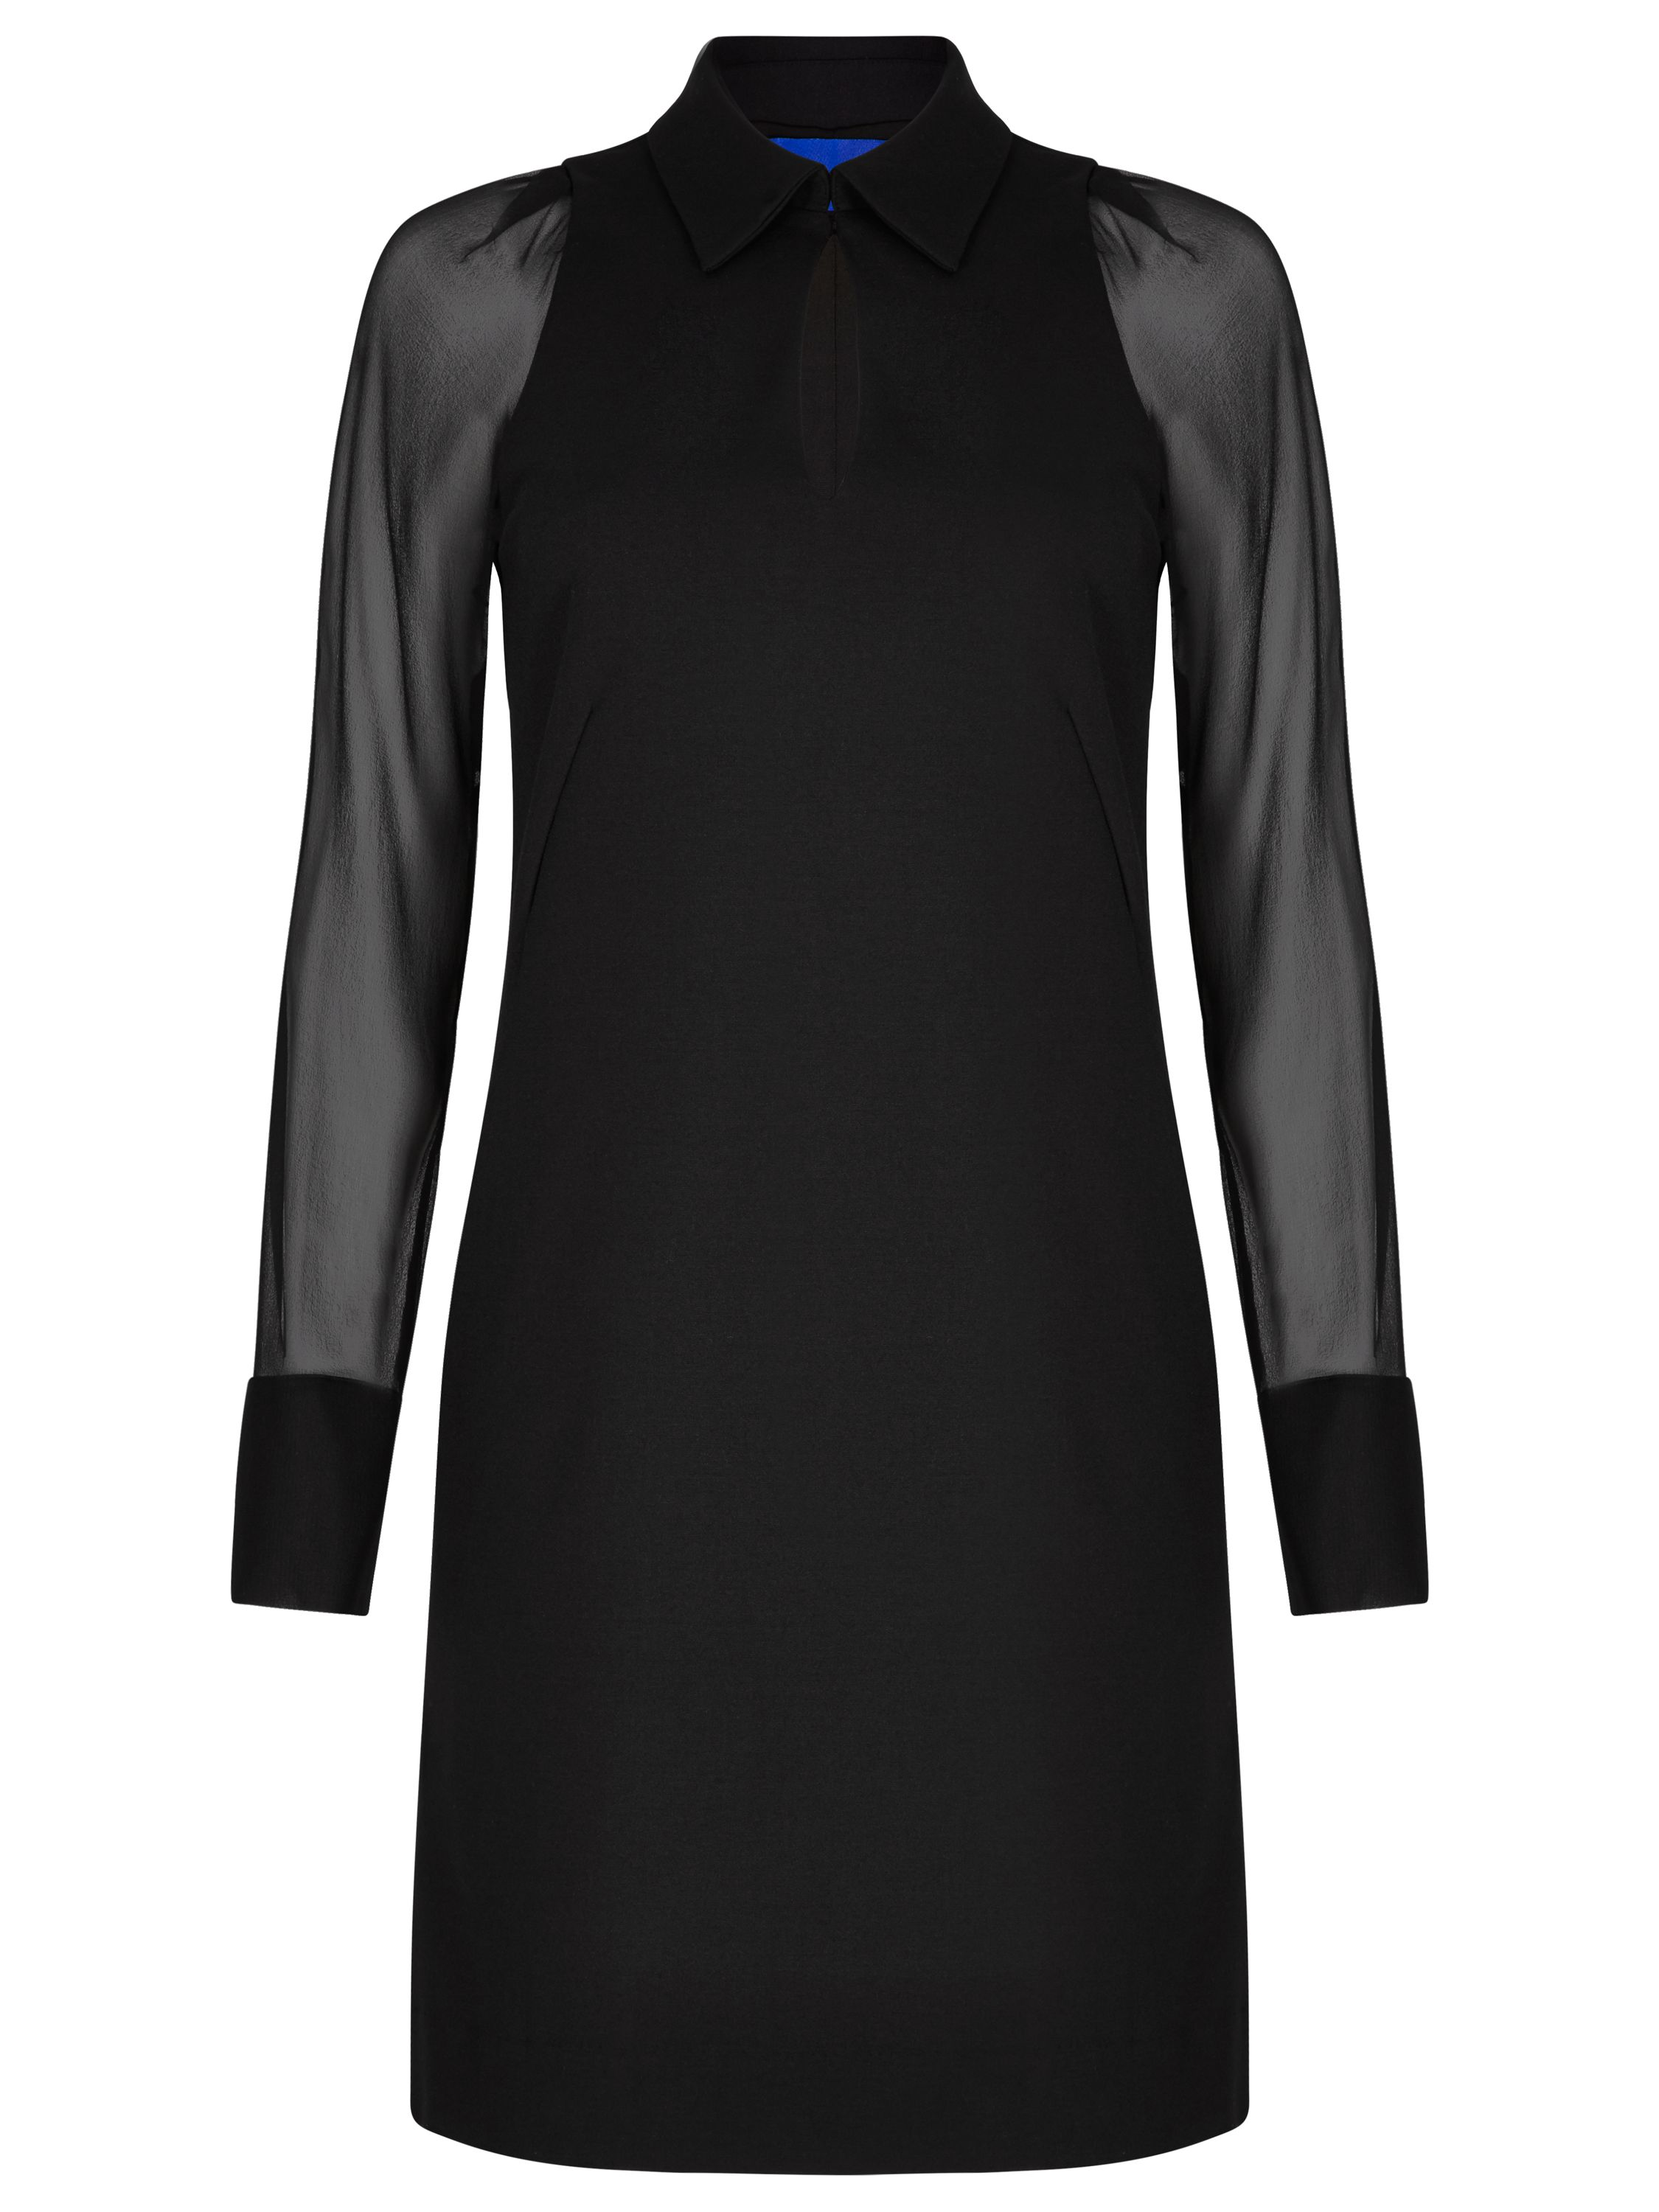 Winser London Miracle Georgette Sleeve Dress, Black